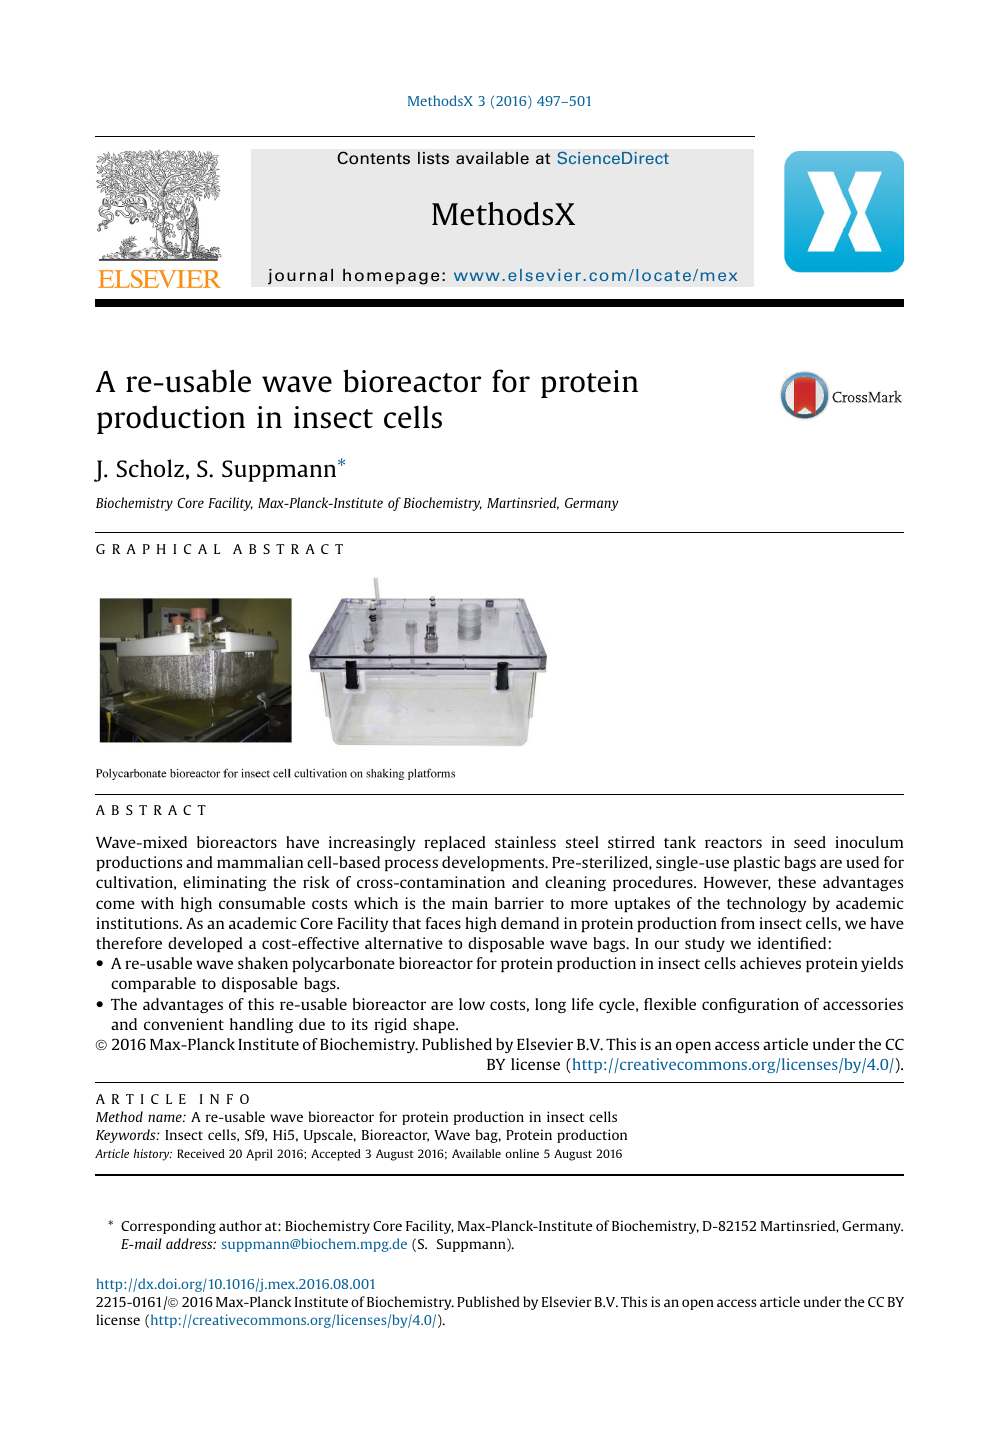 A re-usable wave bioreactor for protein production in insect cells